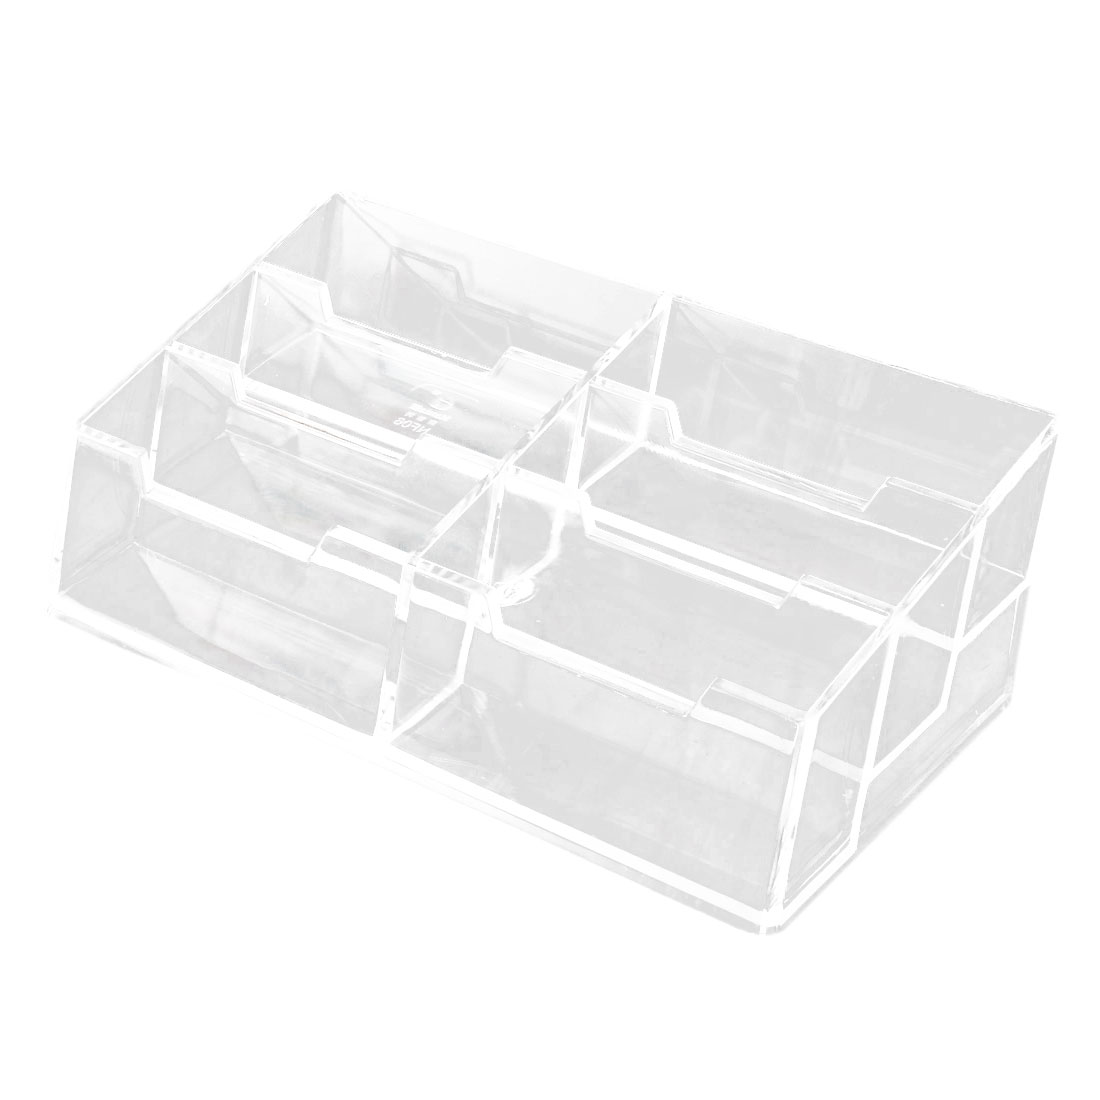 Office Business Plastic 6 Grids Collection Name Business Card Holder Case Clear